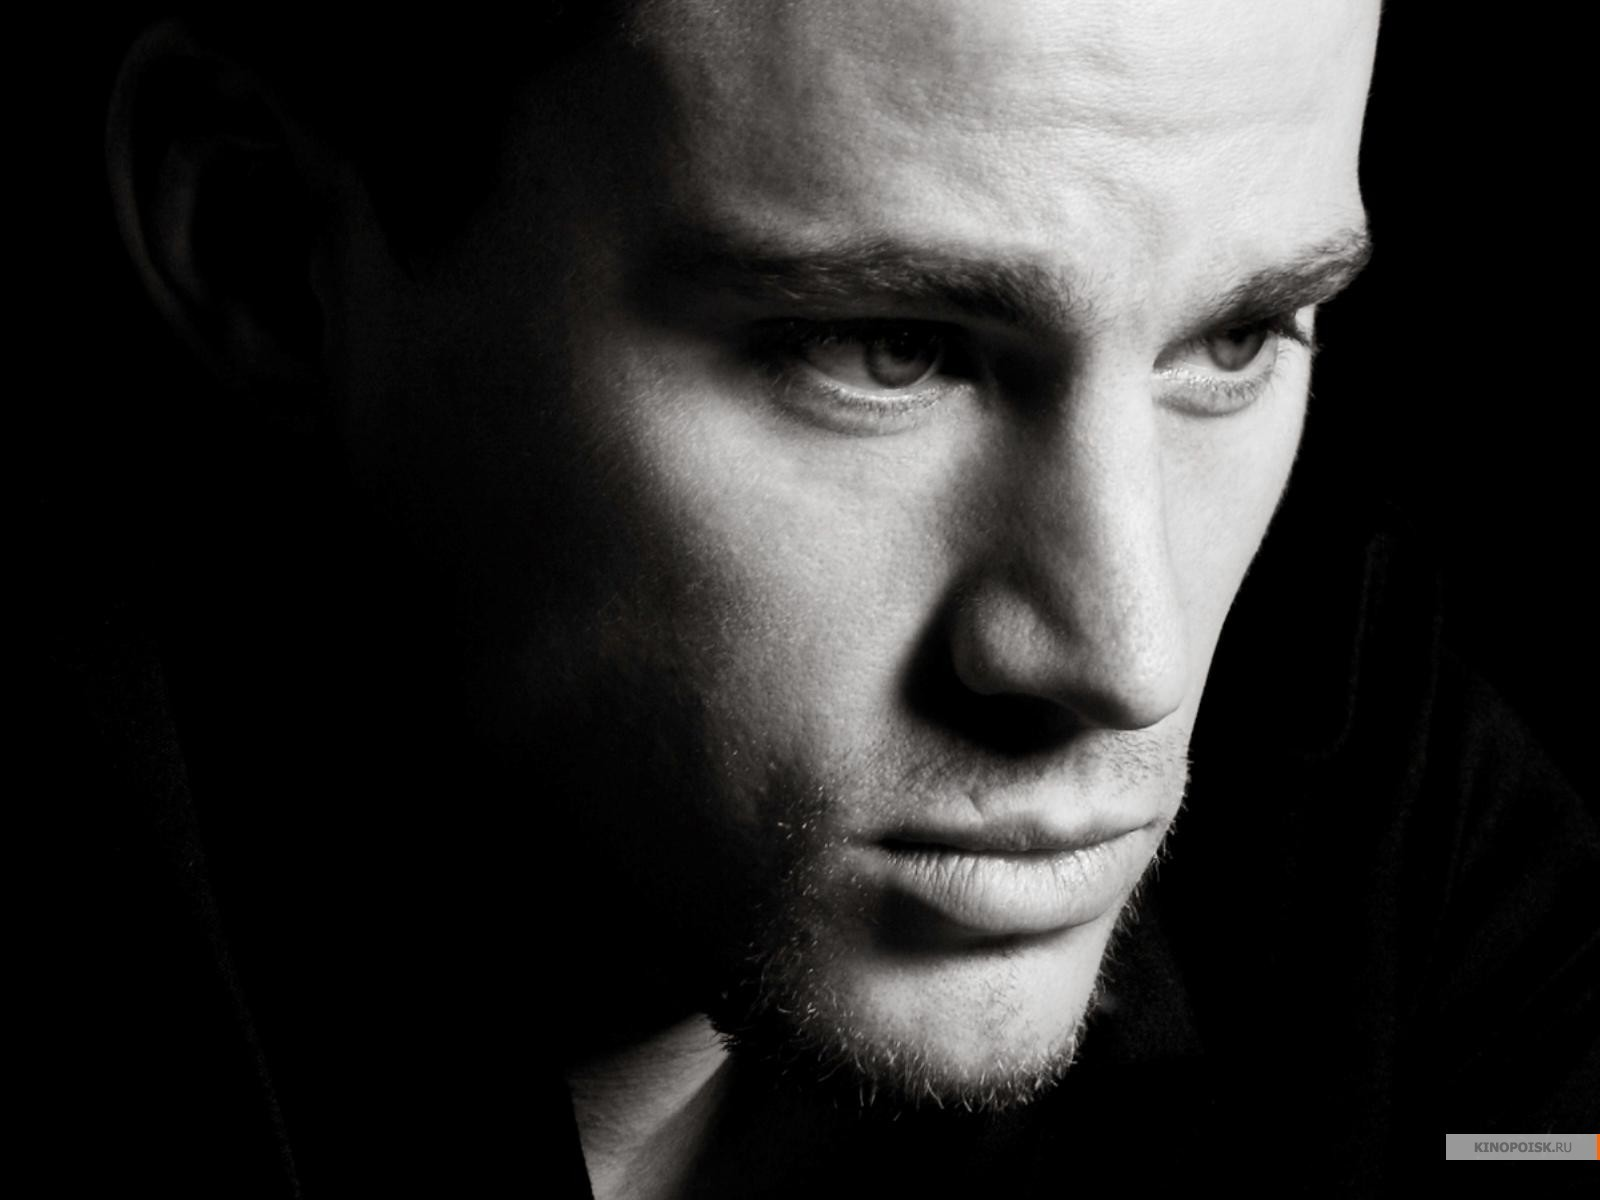 Channing-Tatum - Channing Tatum Wallpaper (7799105) - Fanpop Channing Tatum